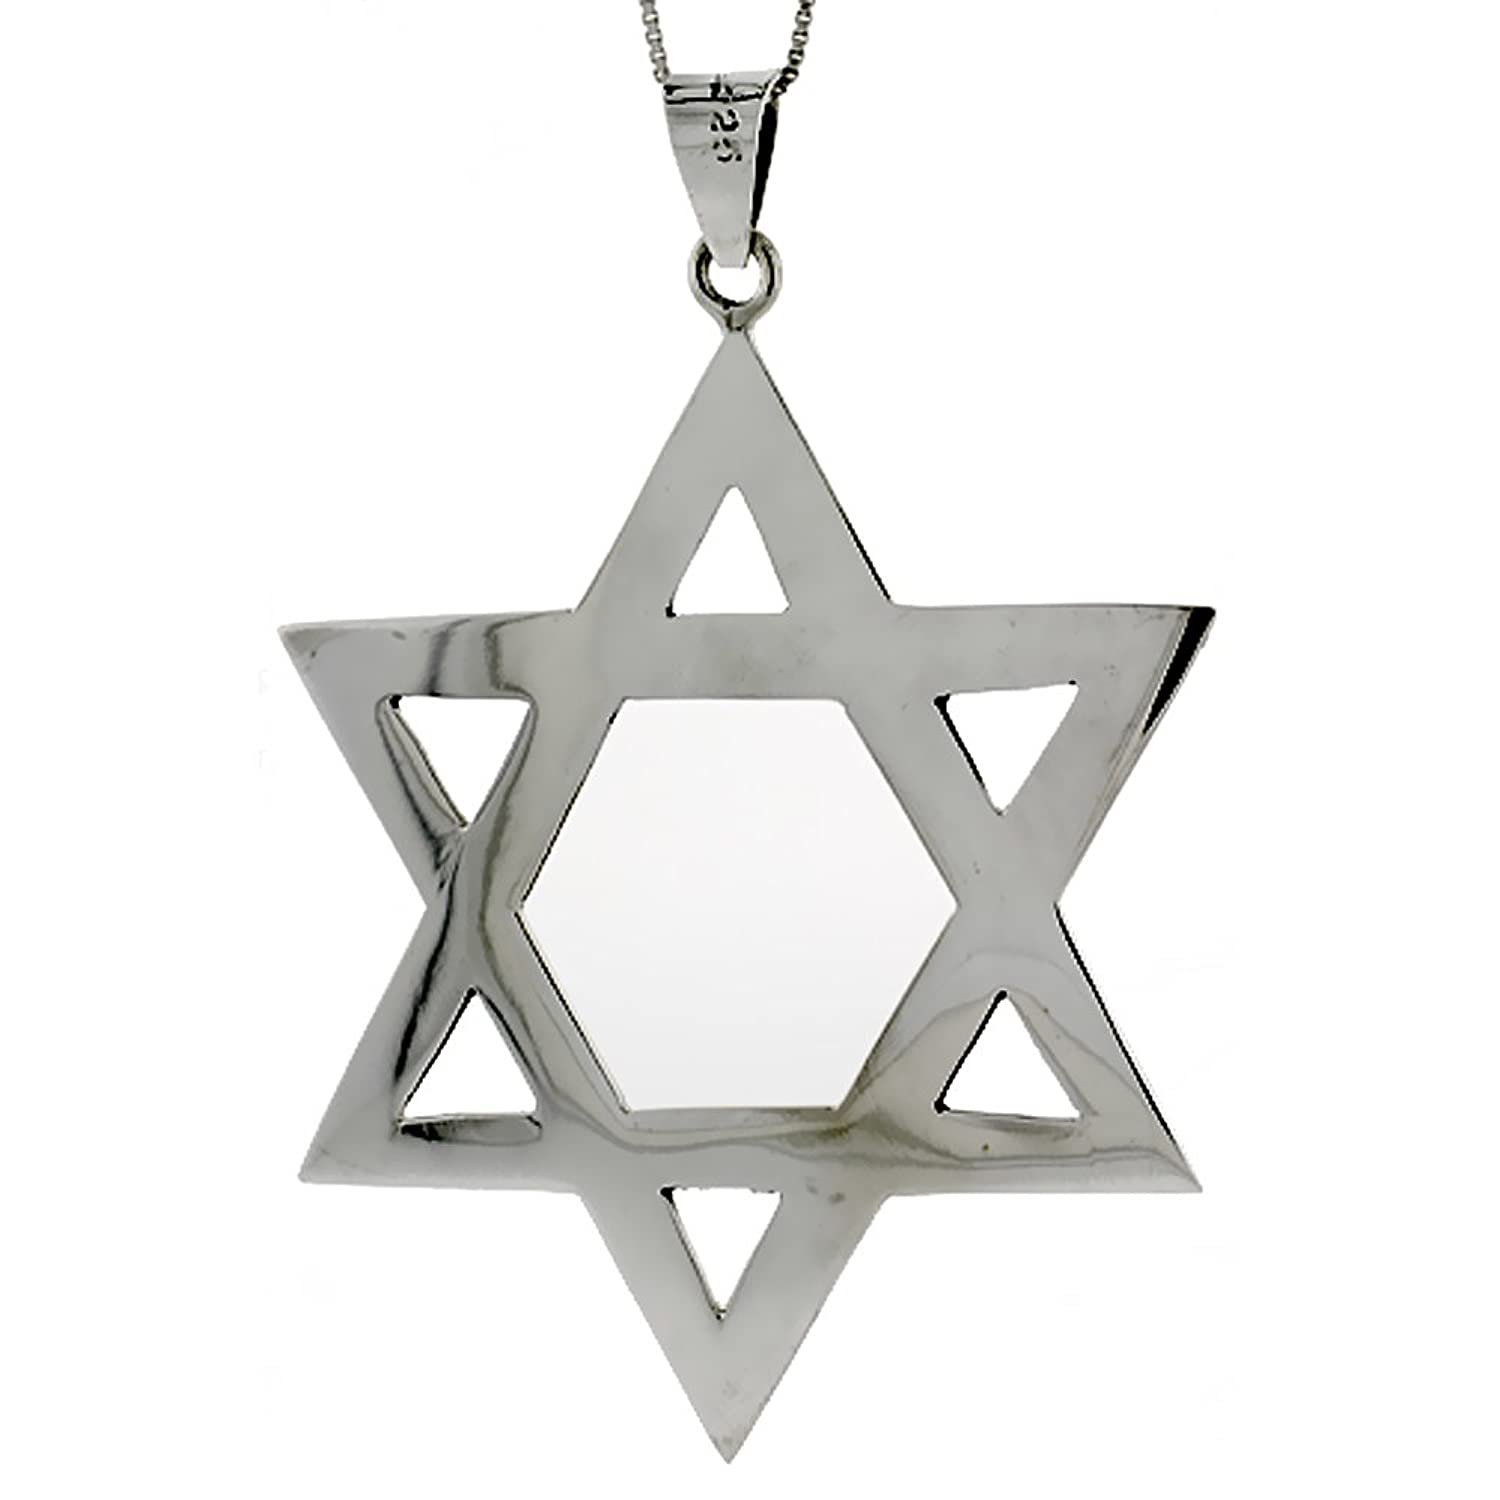 pchaistar pendant jewelry starofdavid david star pk sterling bling jewish silver chain magen beaded necklace ash of